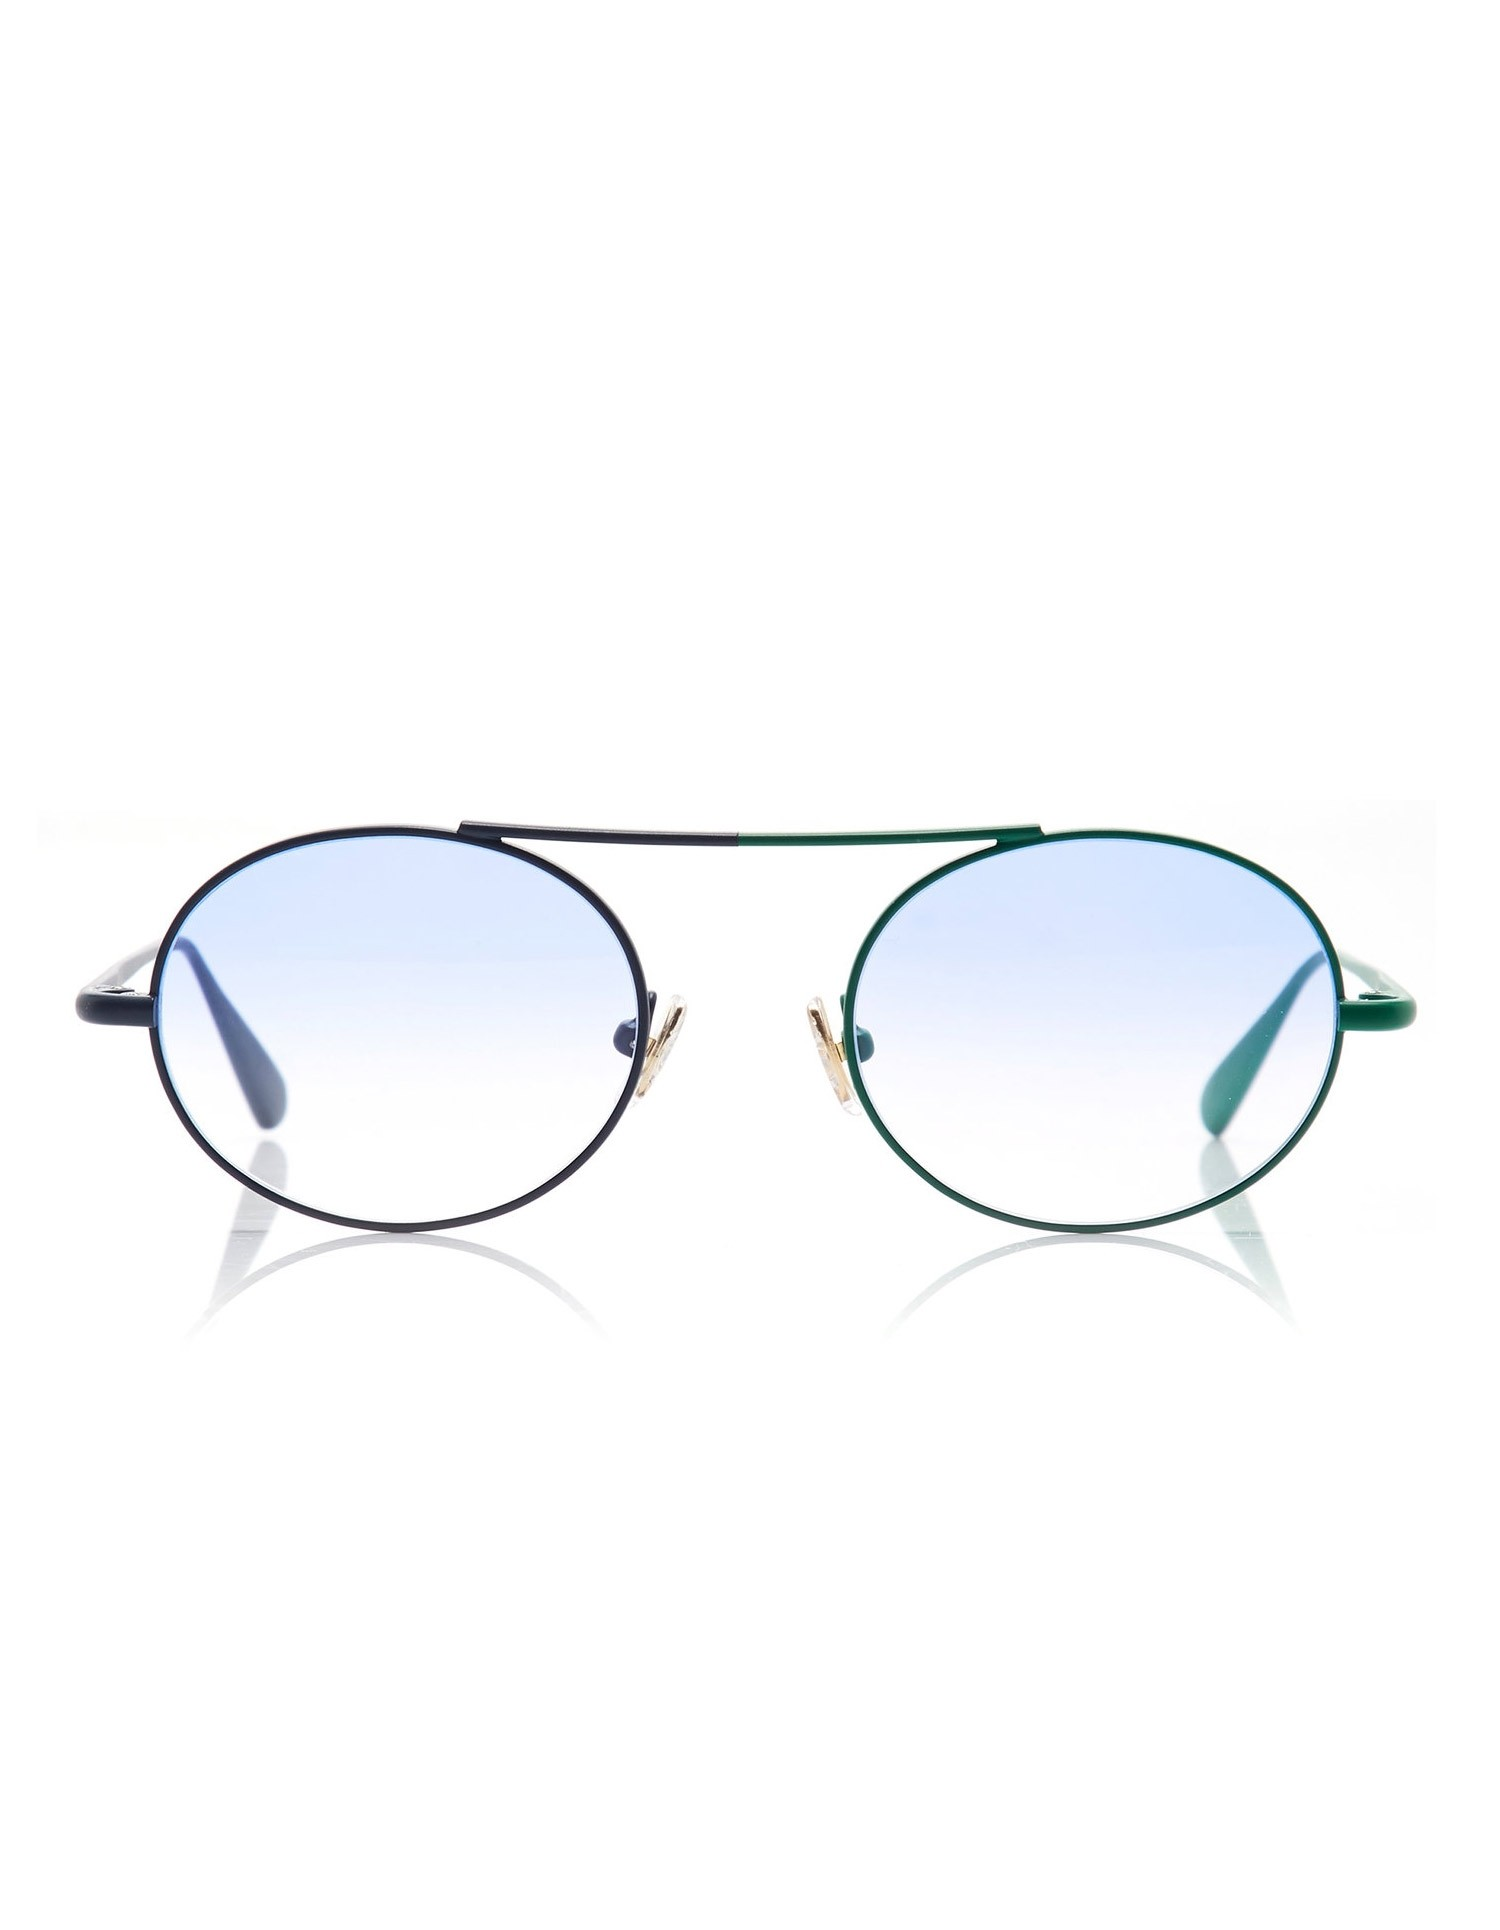 Monse Nina Sunglasses with Dual Colored Rims in Navy and Green